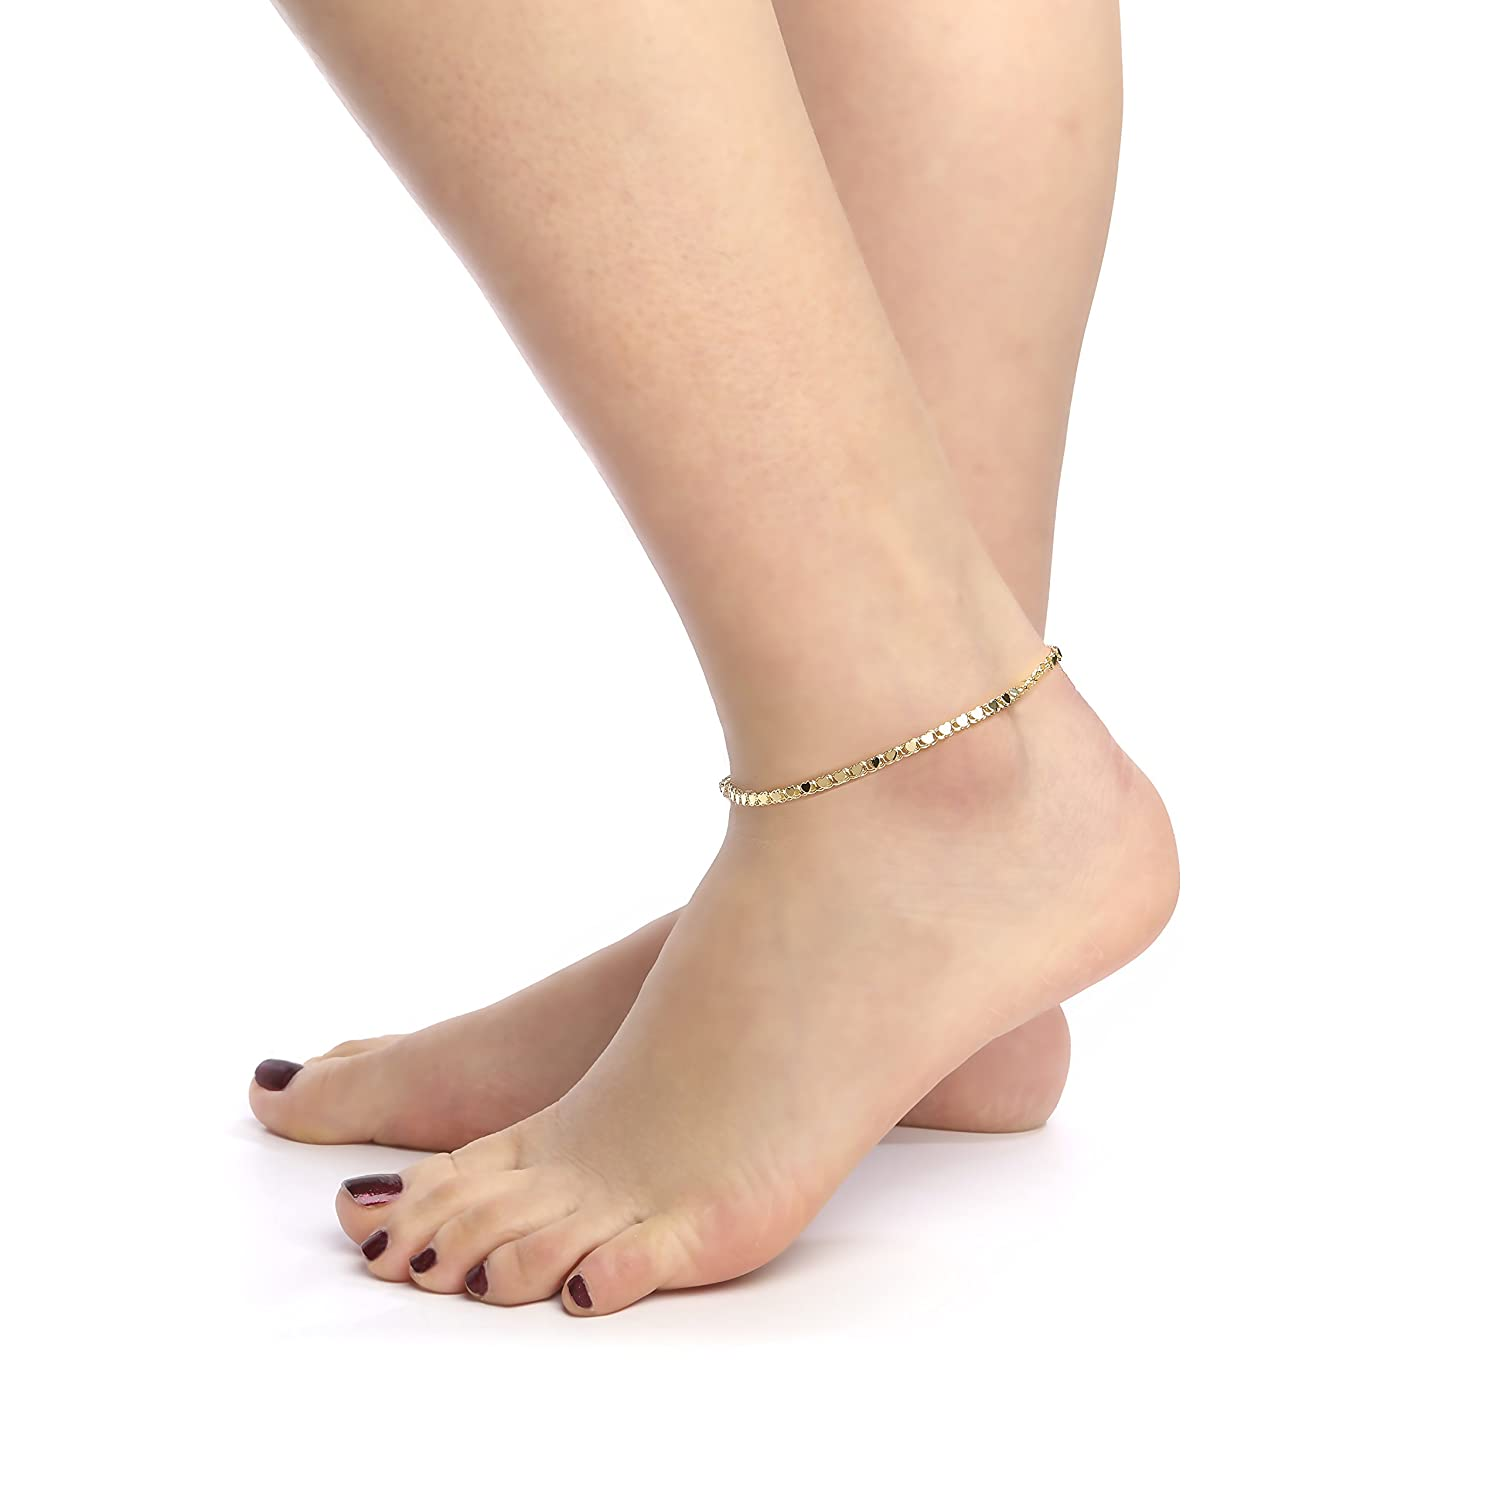 charms women anklet girls com and amazon heart with jewelry bracelet white ankle bracelets dp inch for gold